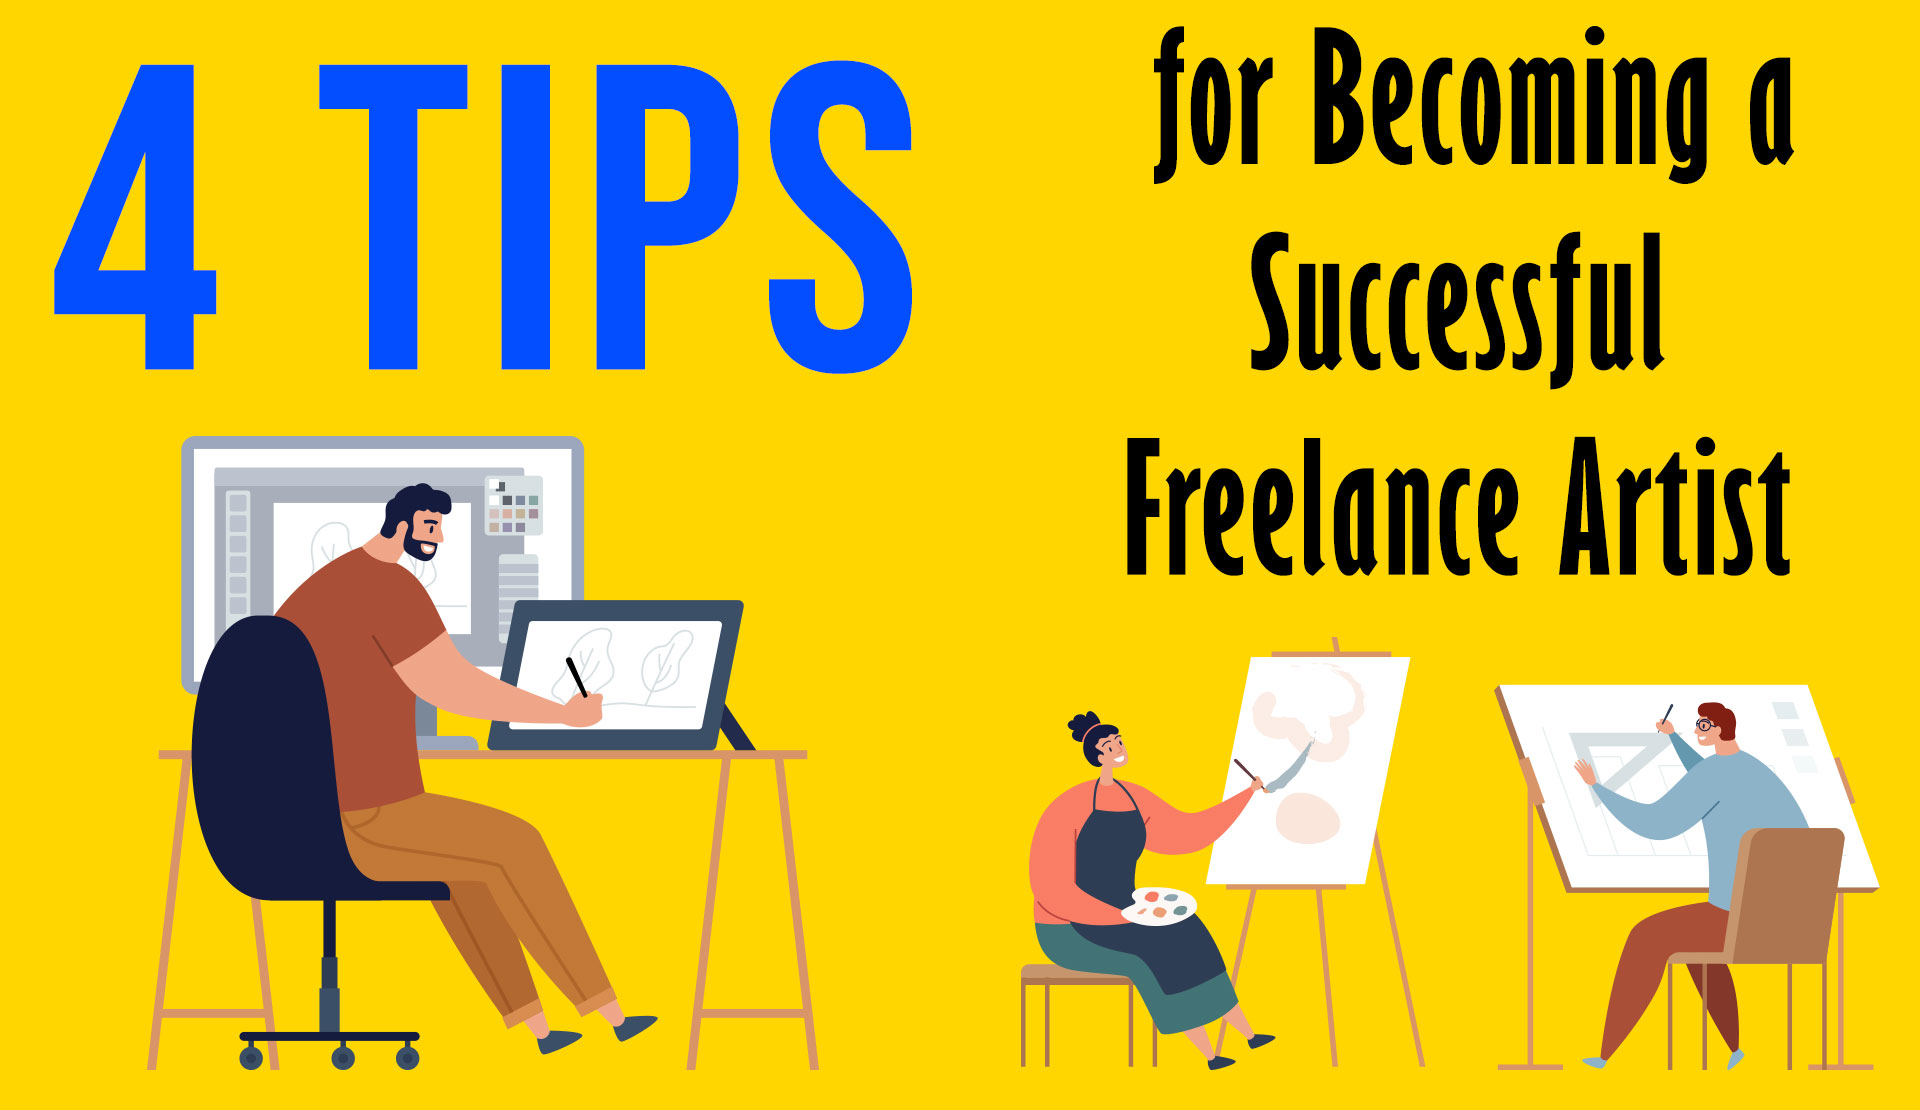 4 Tips for Becoming a Successful Freelance Artist